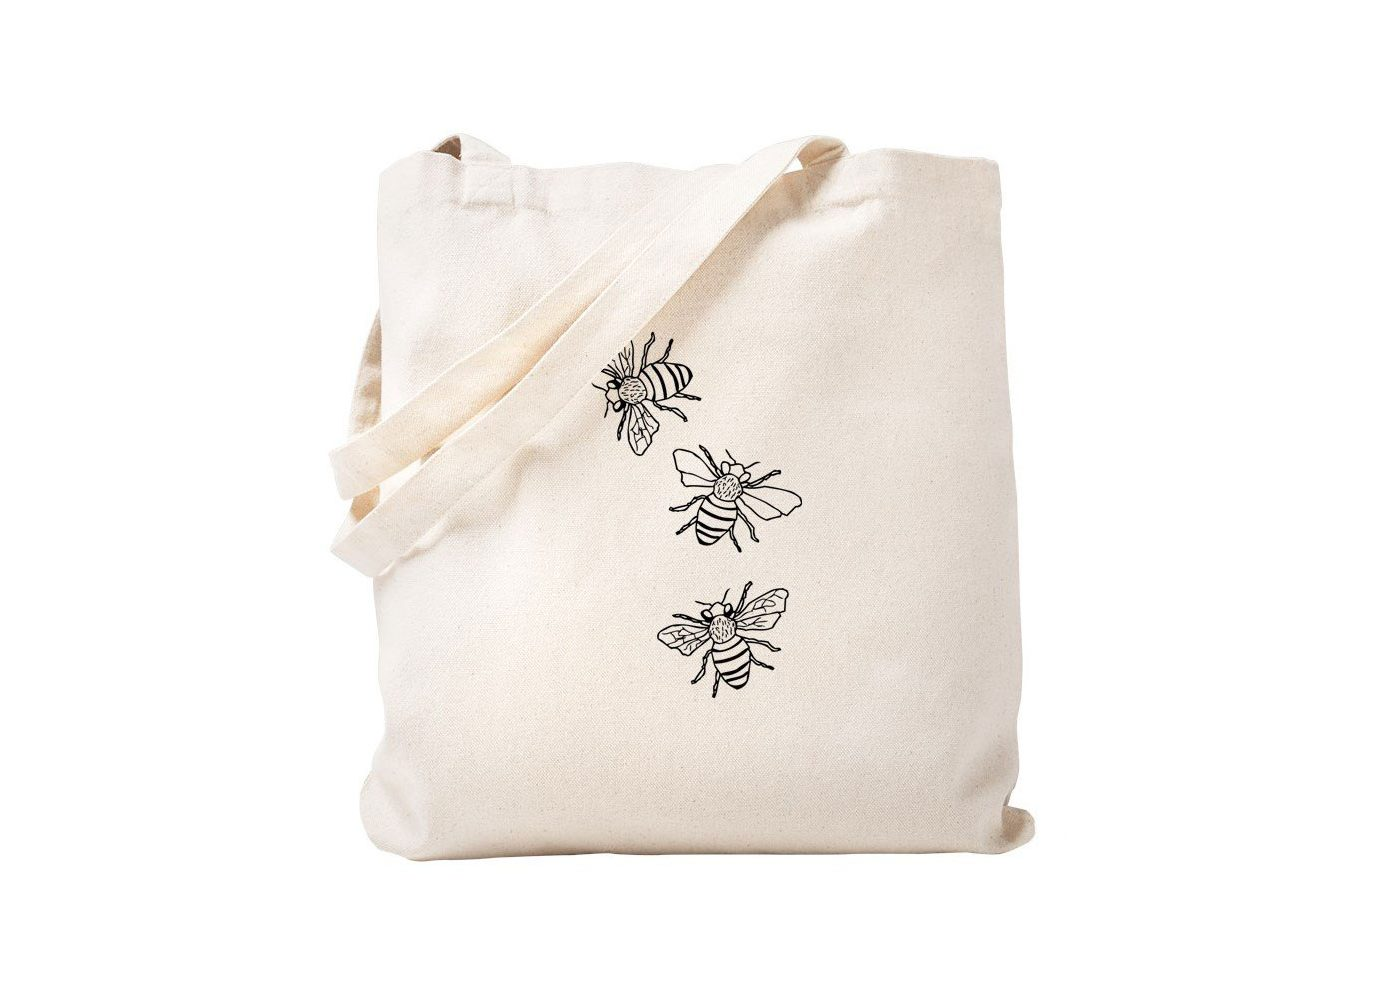 CafePress Honey Bees Natural Canvas Tote Bag, Cloth Shopping Bag on Amazon